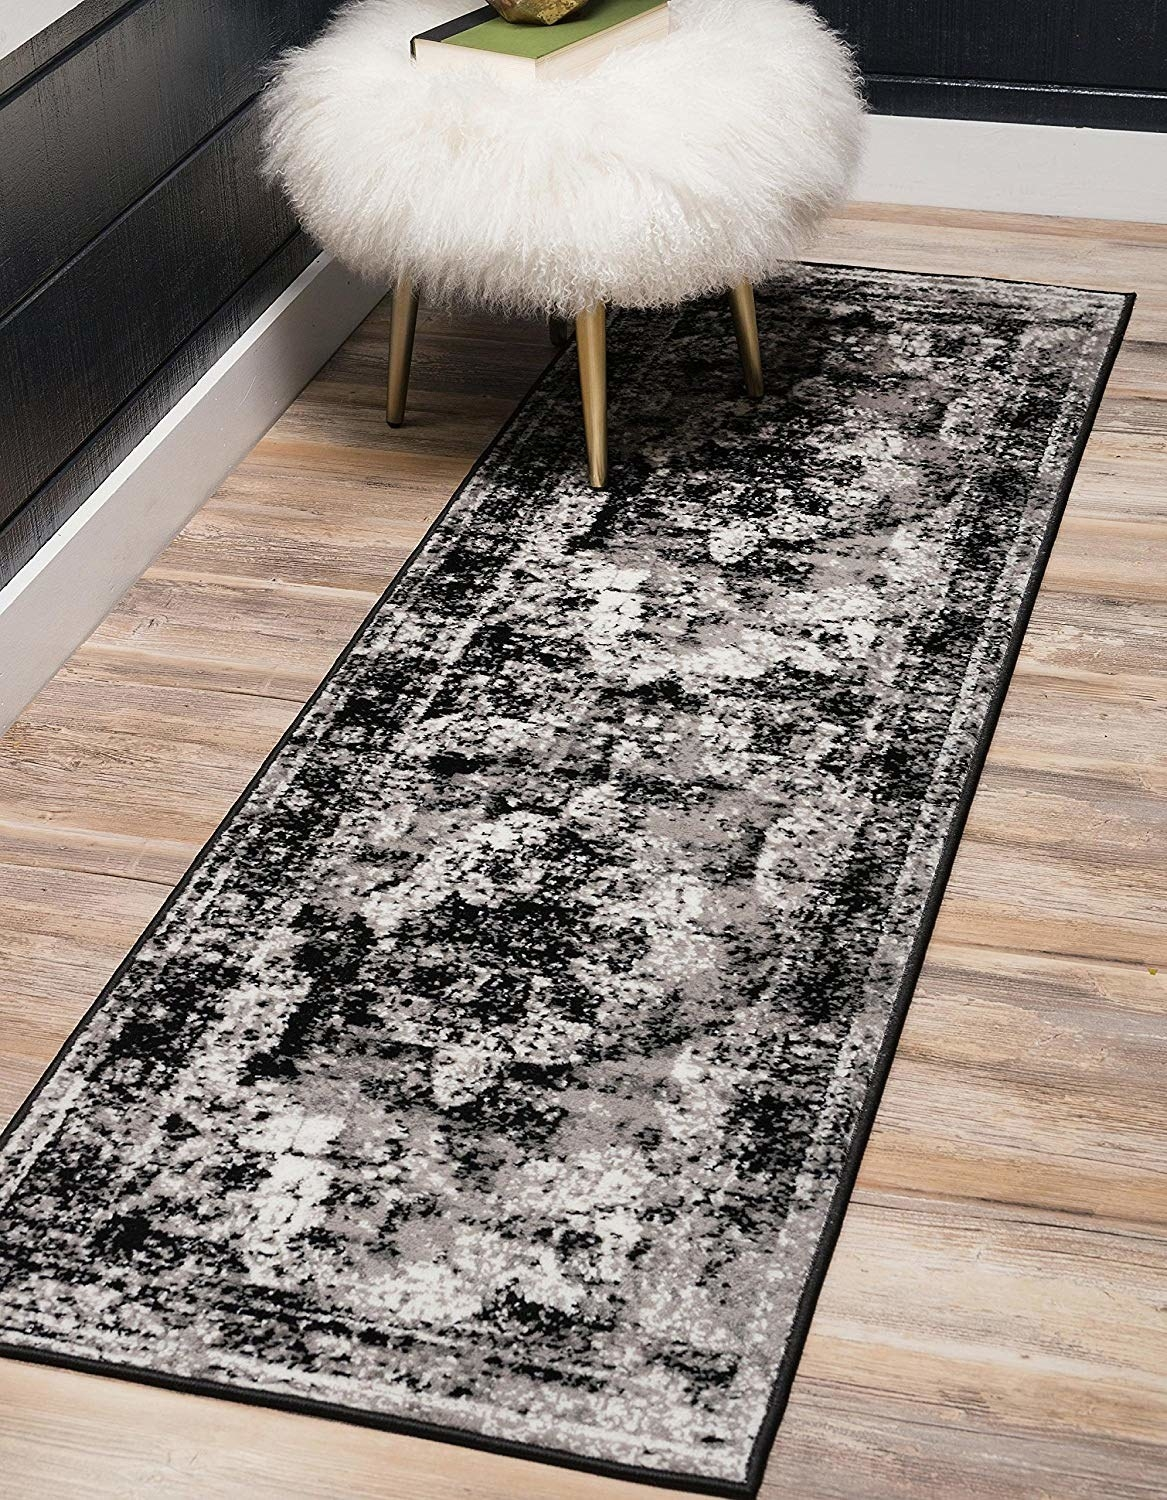 black, gray, and white rug runner with antique-inspired design